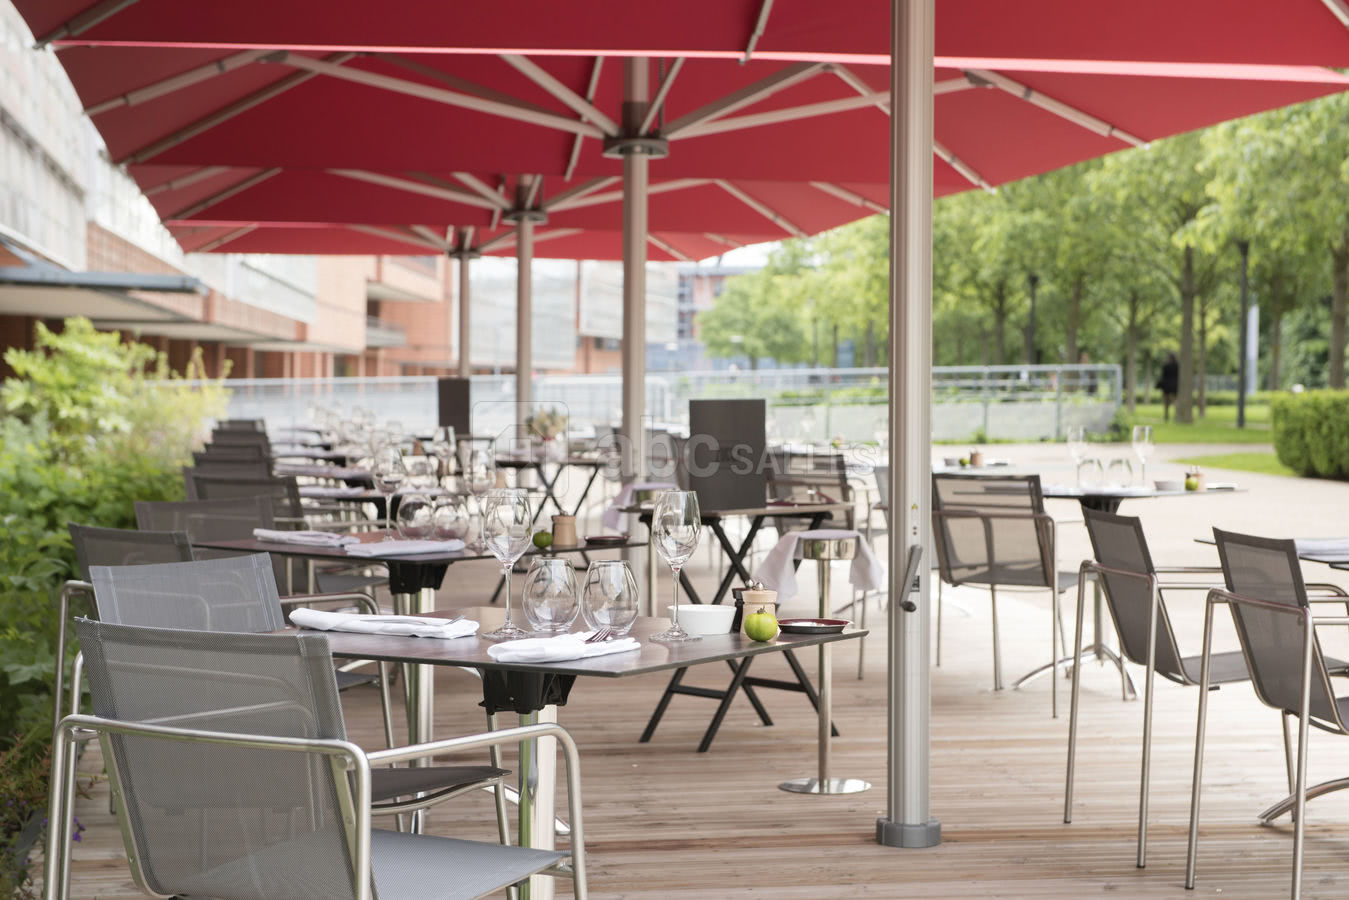 Restaurant En Terrasse Lyon Marriott Lyon Cité Internationale Abc Salles